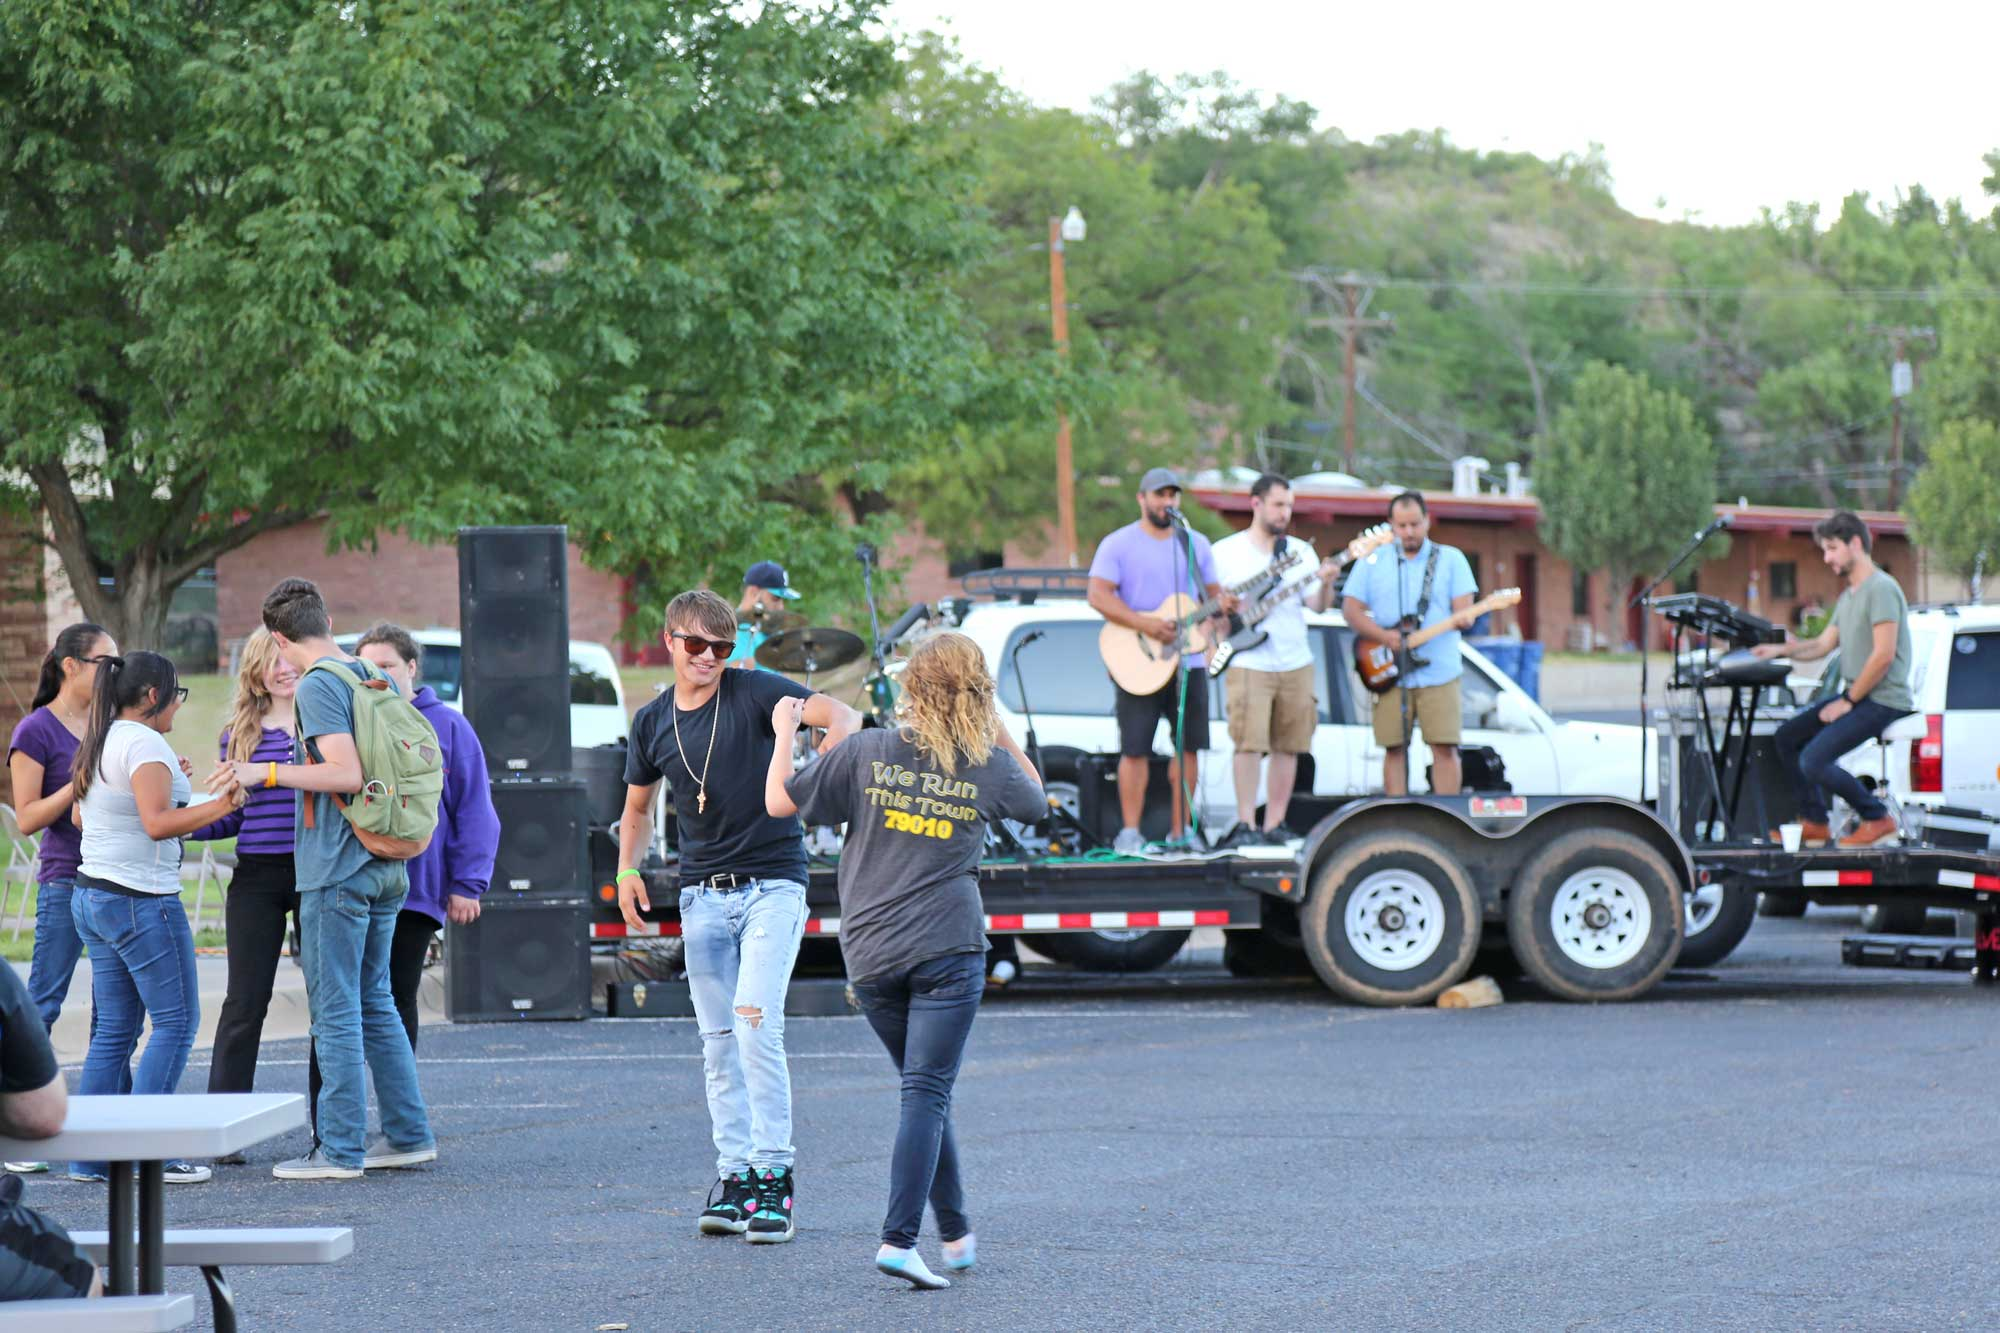 Image 1 of block party band & residents dancing